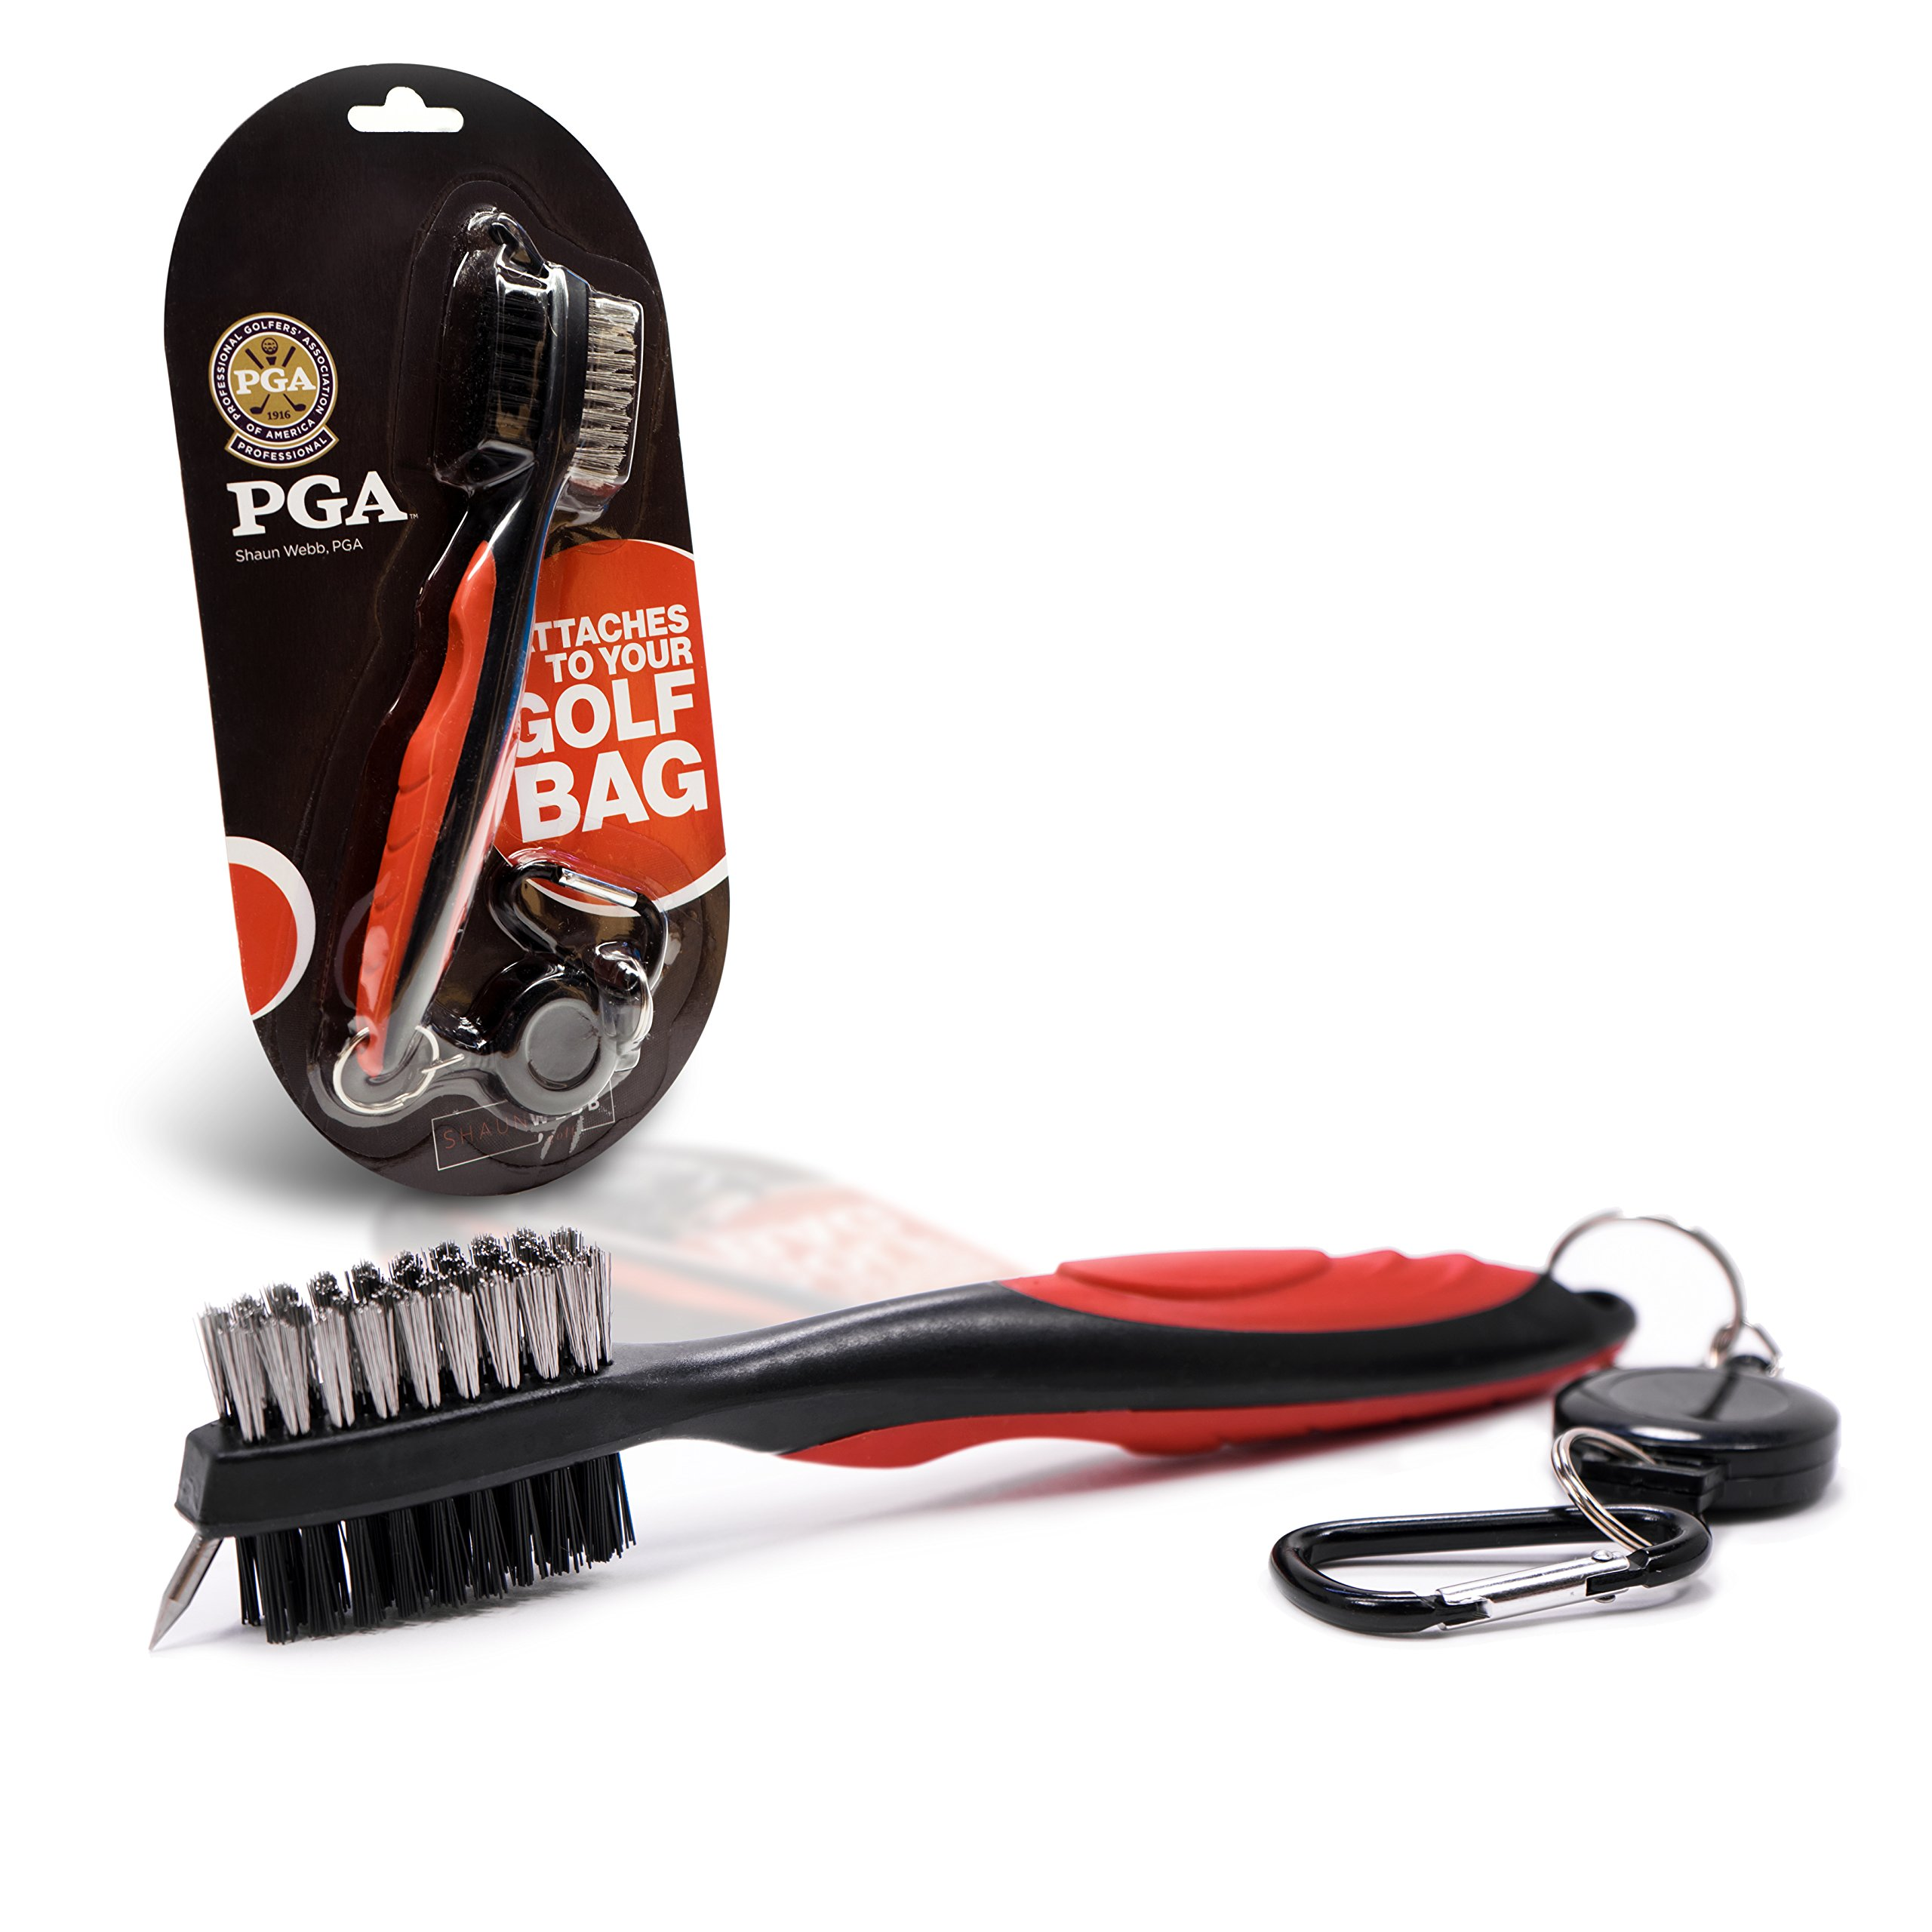 """Shaun Webb's PGA, Golf Brush Set, All-in-1 Cleaner for Irons, Woods, Groove and Shoe with Retractable Zip-line Cord (Over 23"""" Long) Lightweight and Ergonomic Design."""